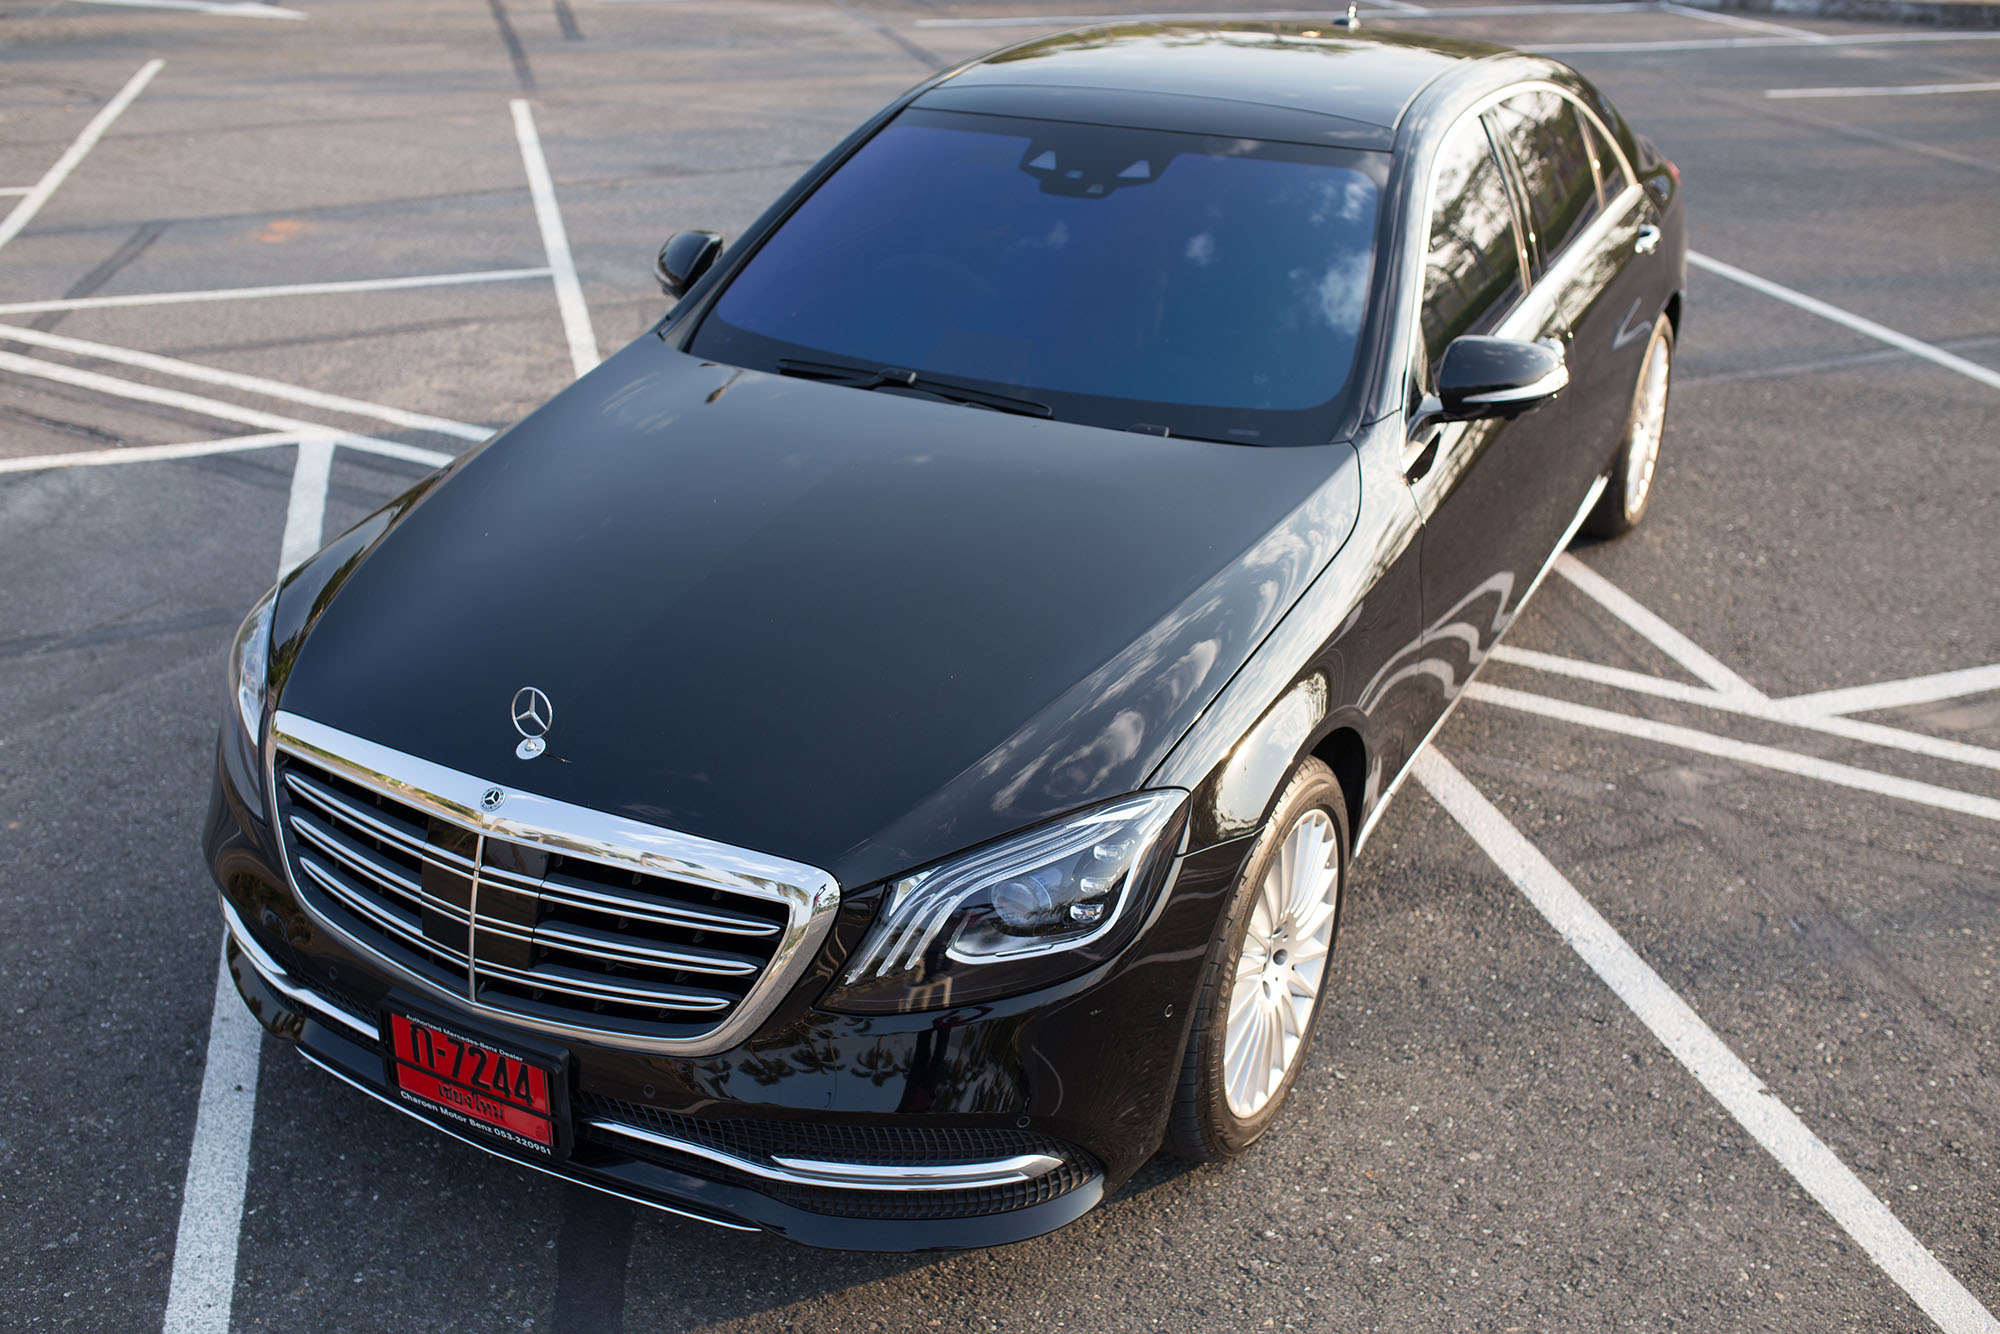 benz s class newest model for rent in chiangmai chiang rai